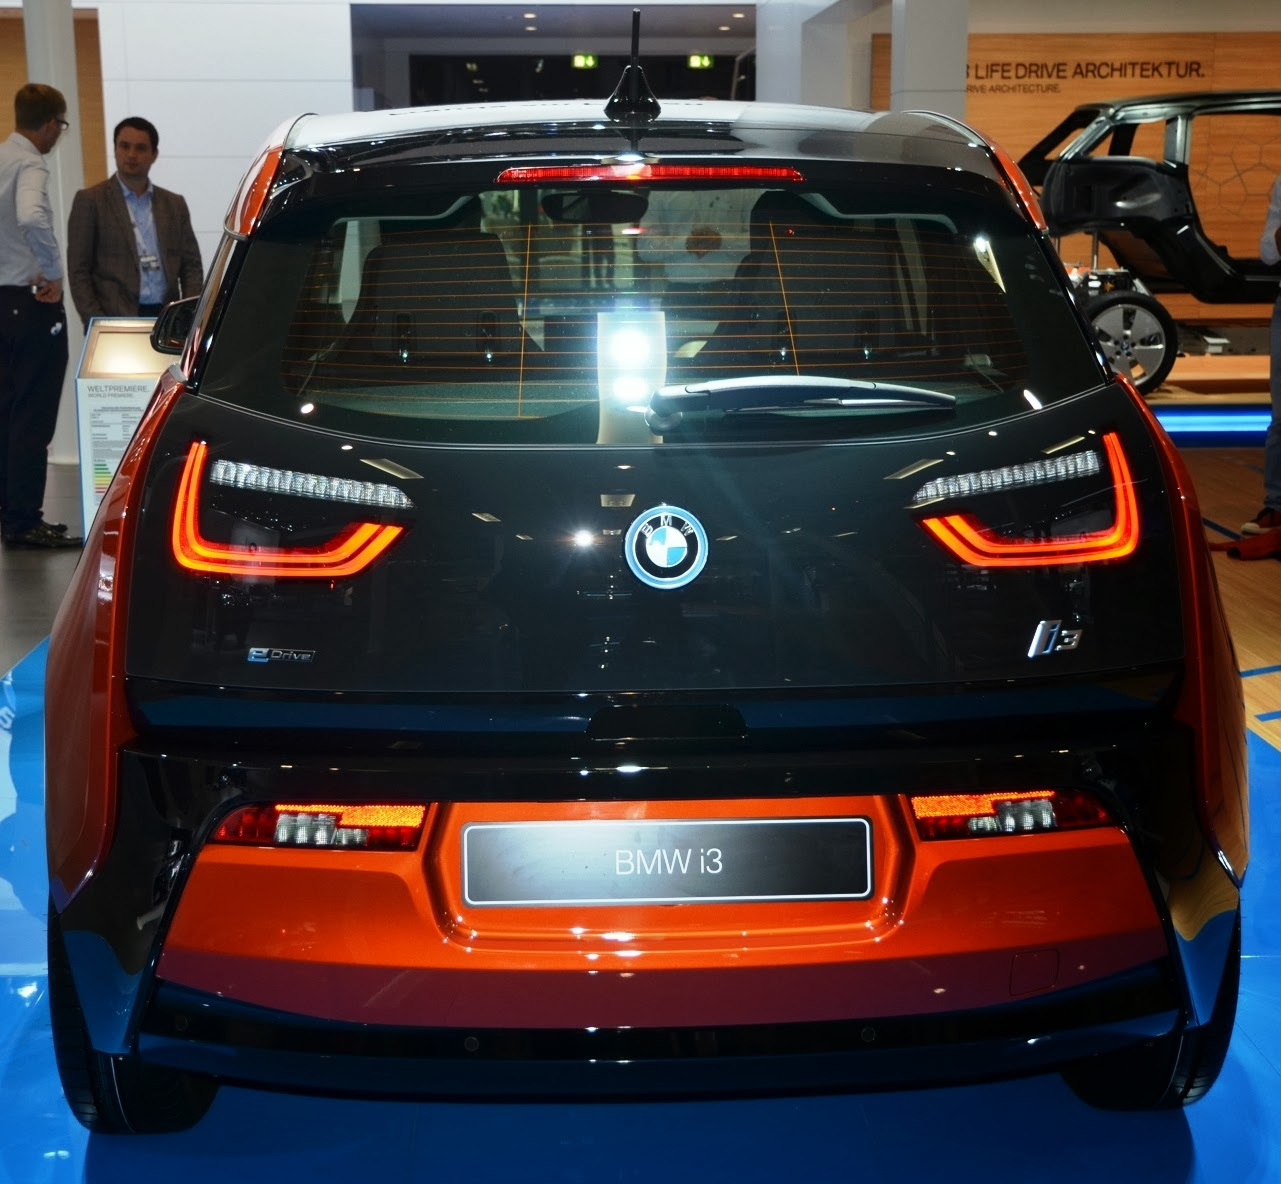 Bmw I3: The Electric BMW I3: BMW I3: I See Your True Colors